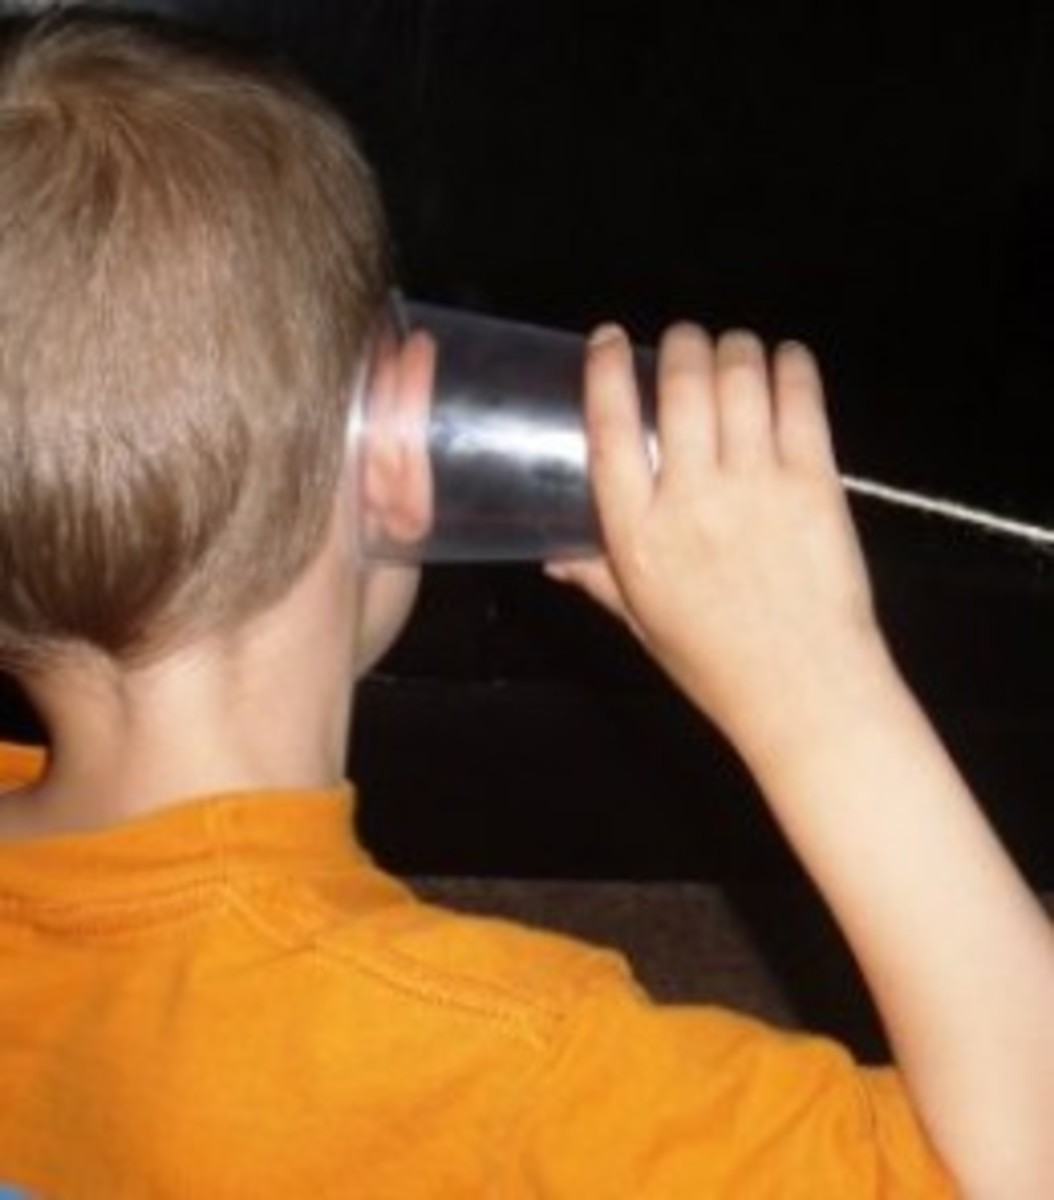 Cup phone used to learn about how sound waves travel from the first lesson in this unit study on hearing and sound waves